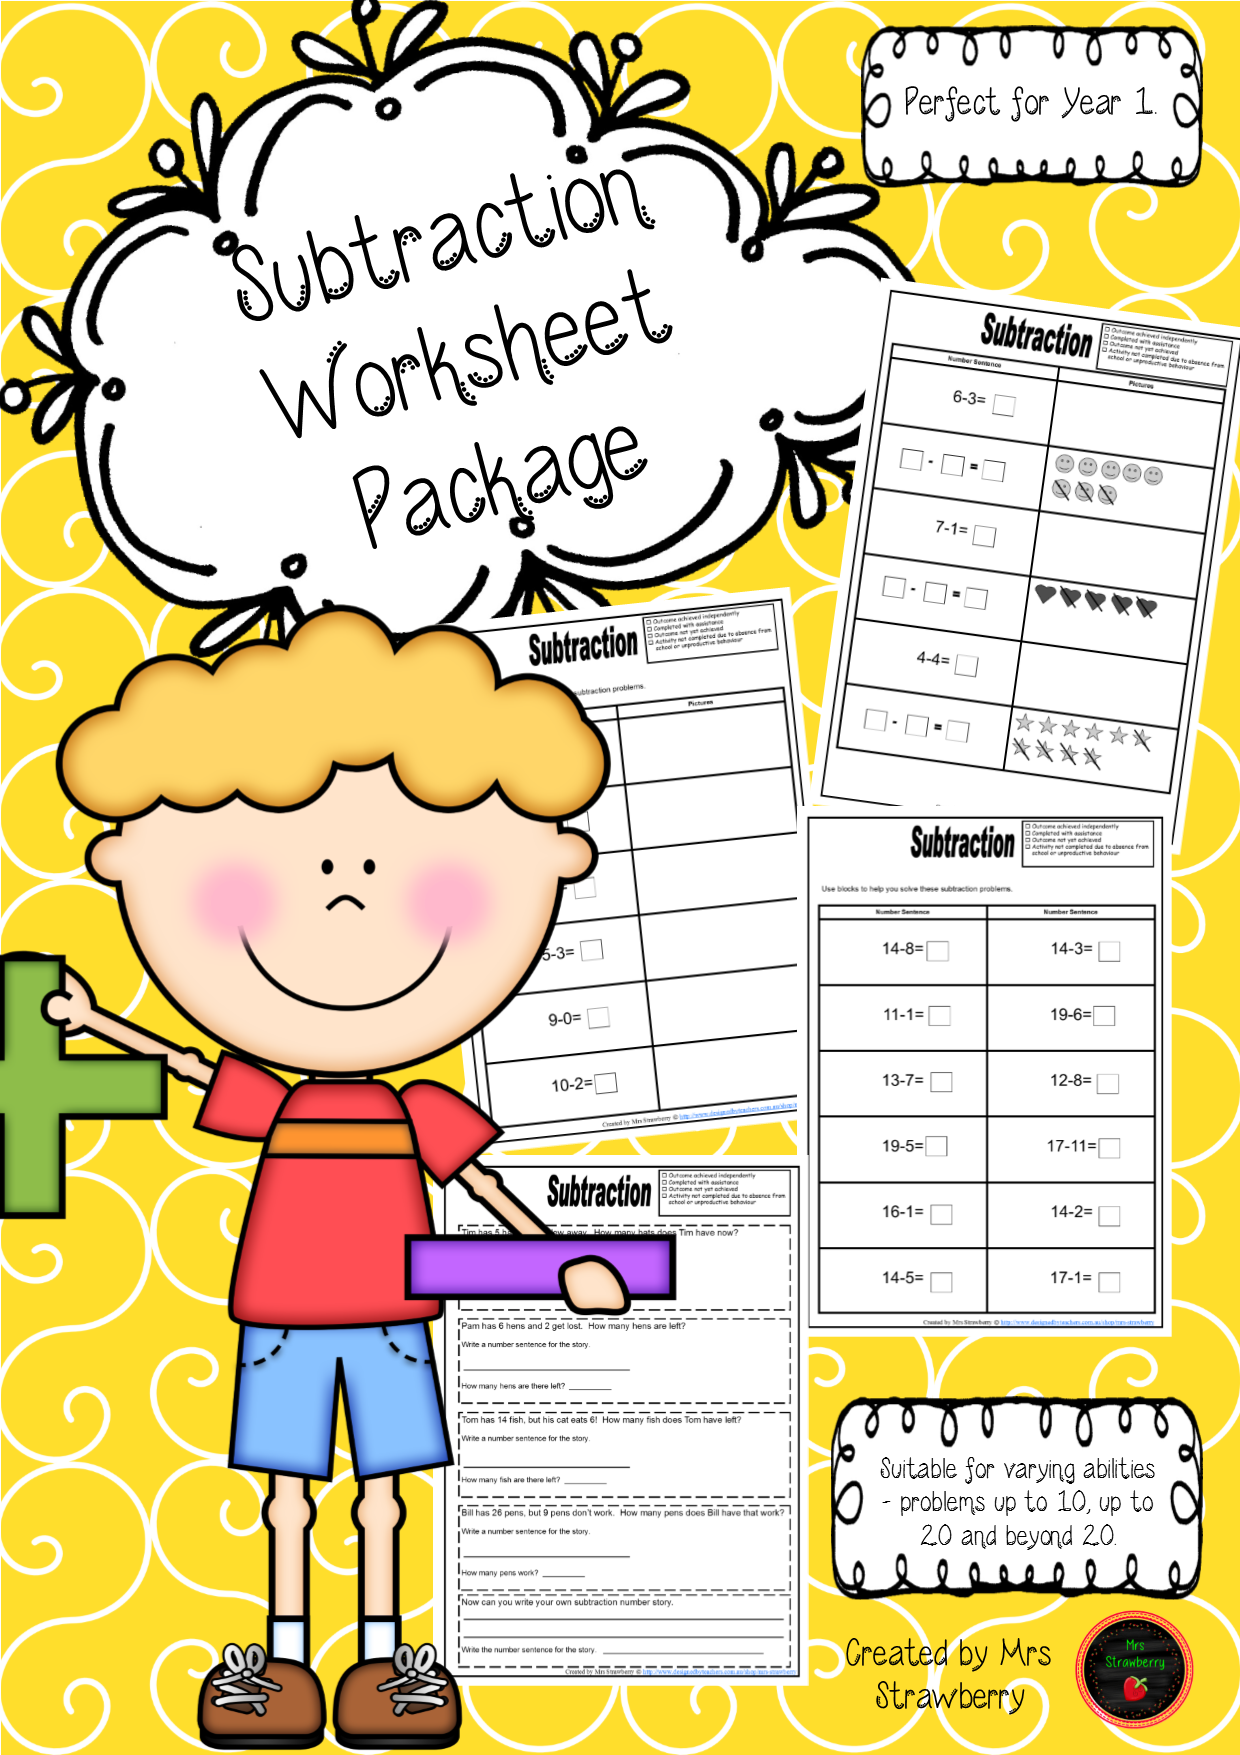 A Series Of Subtraction Worksheets That Cater For Varying Abilities